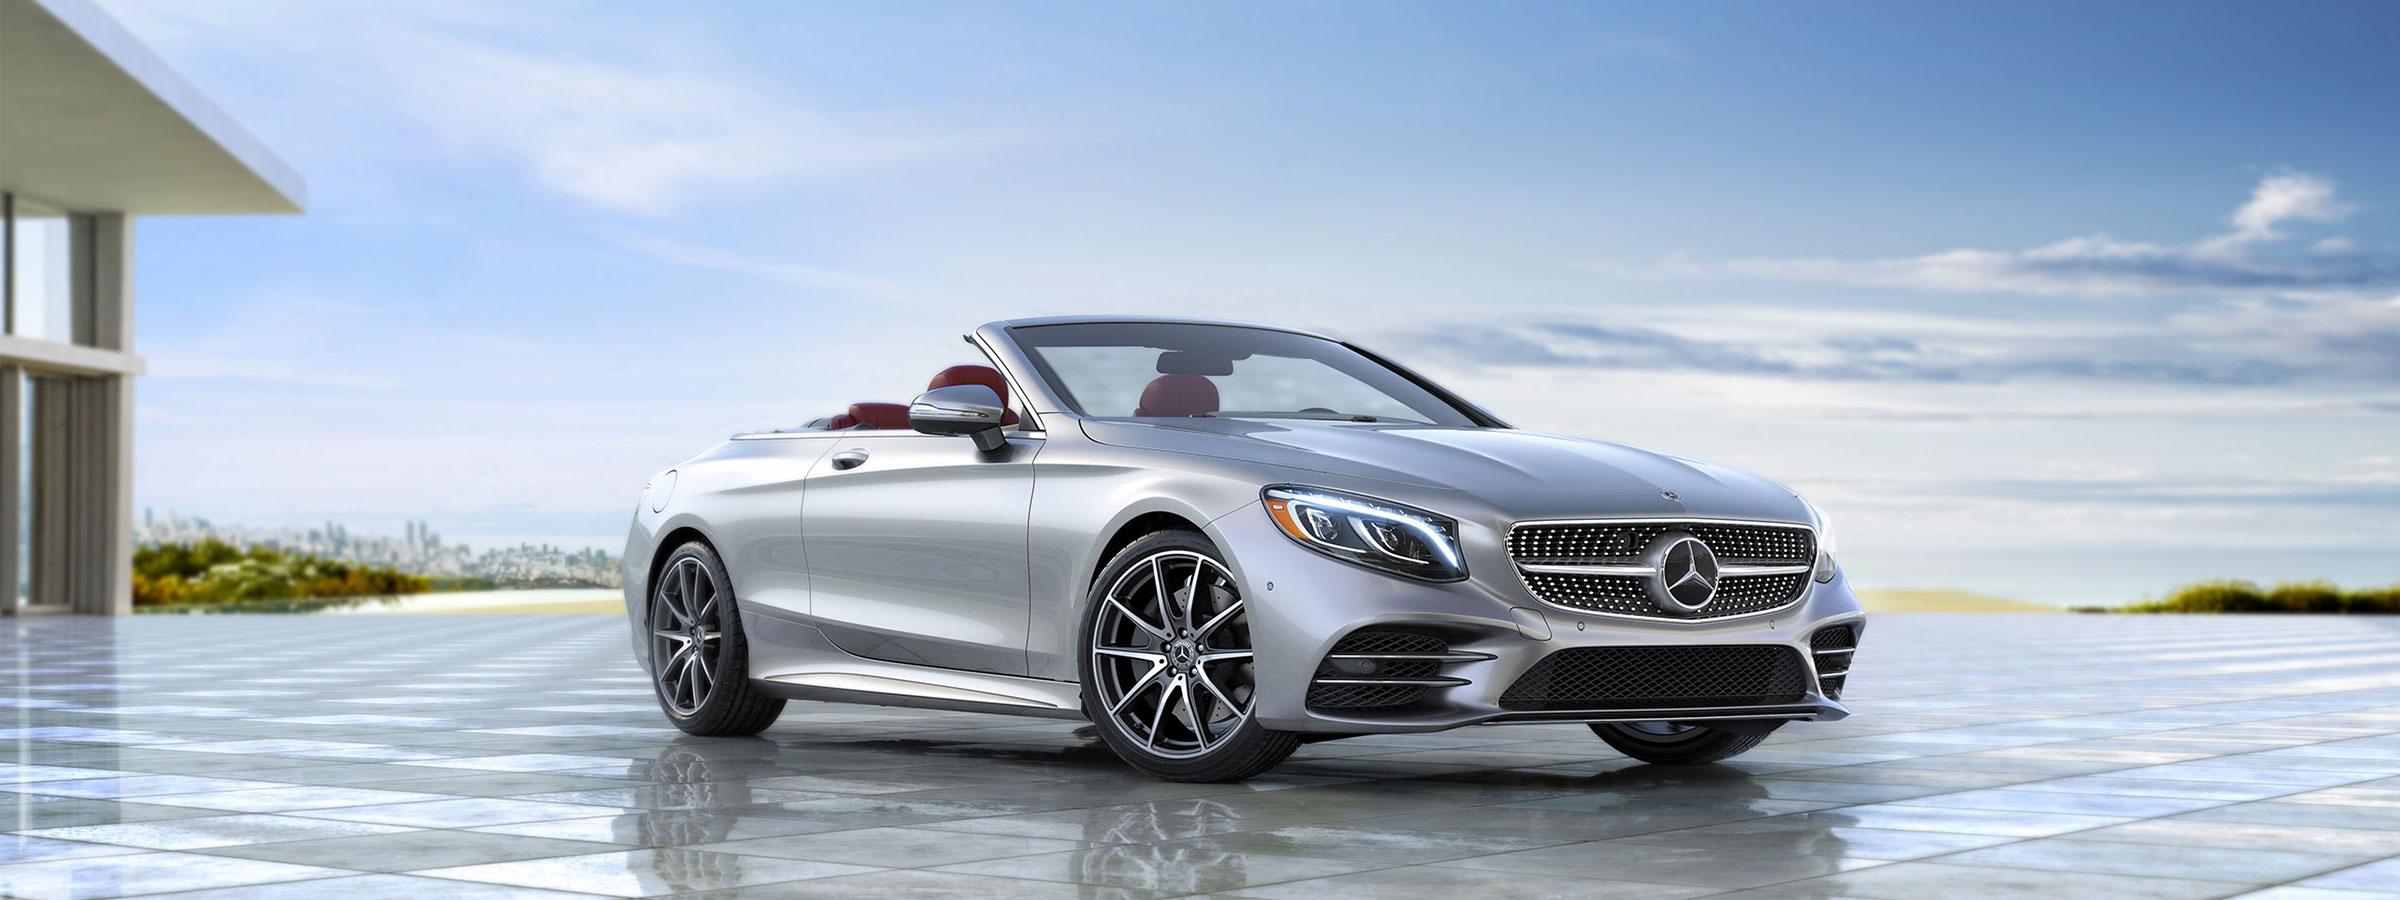 2019 S Class Cabriolet